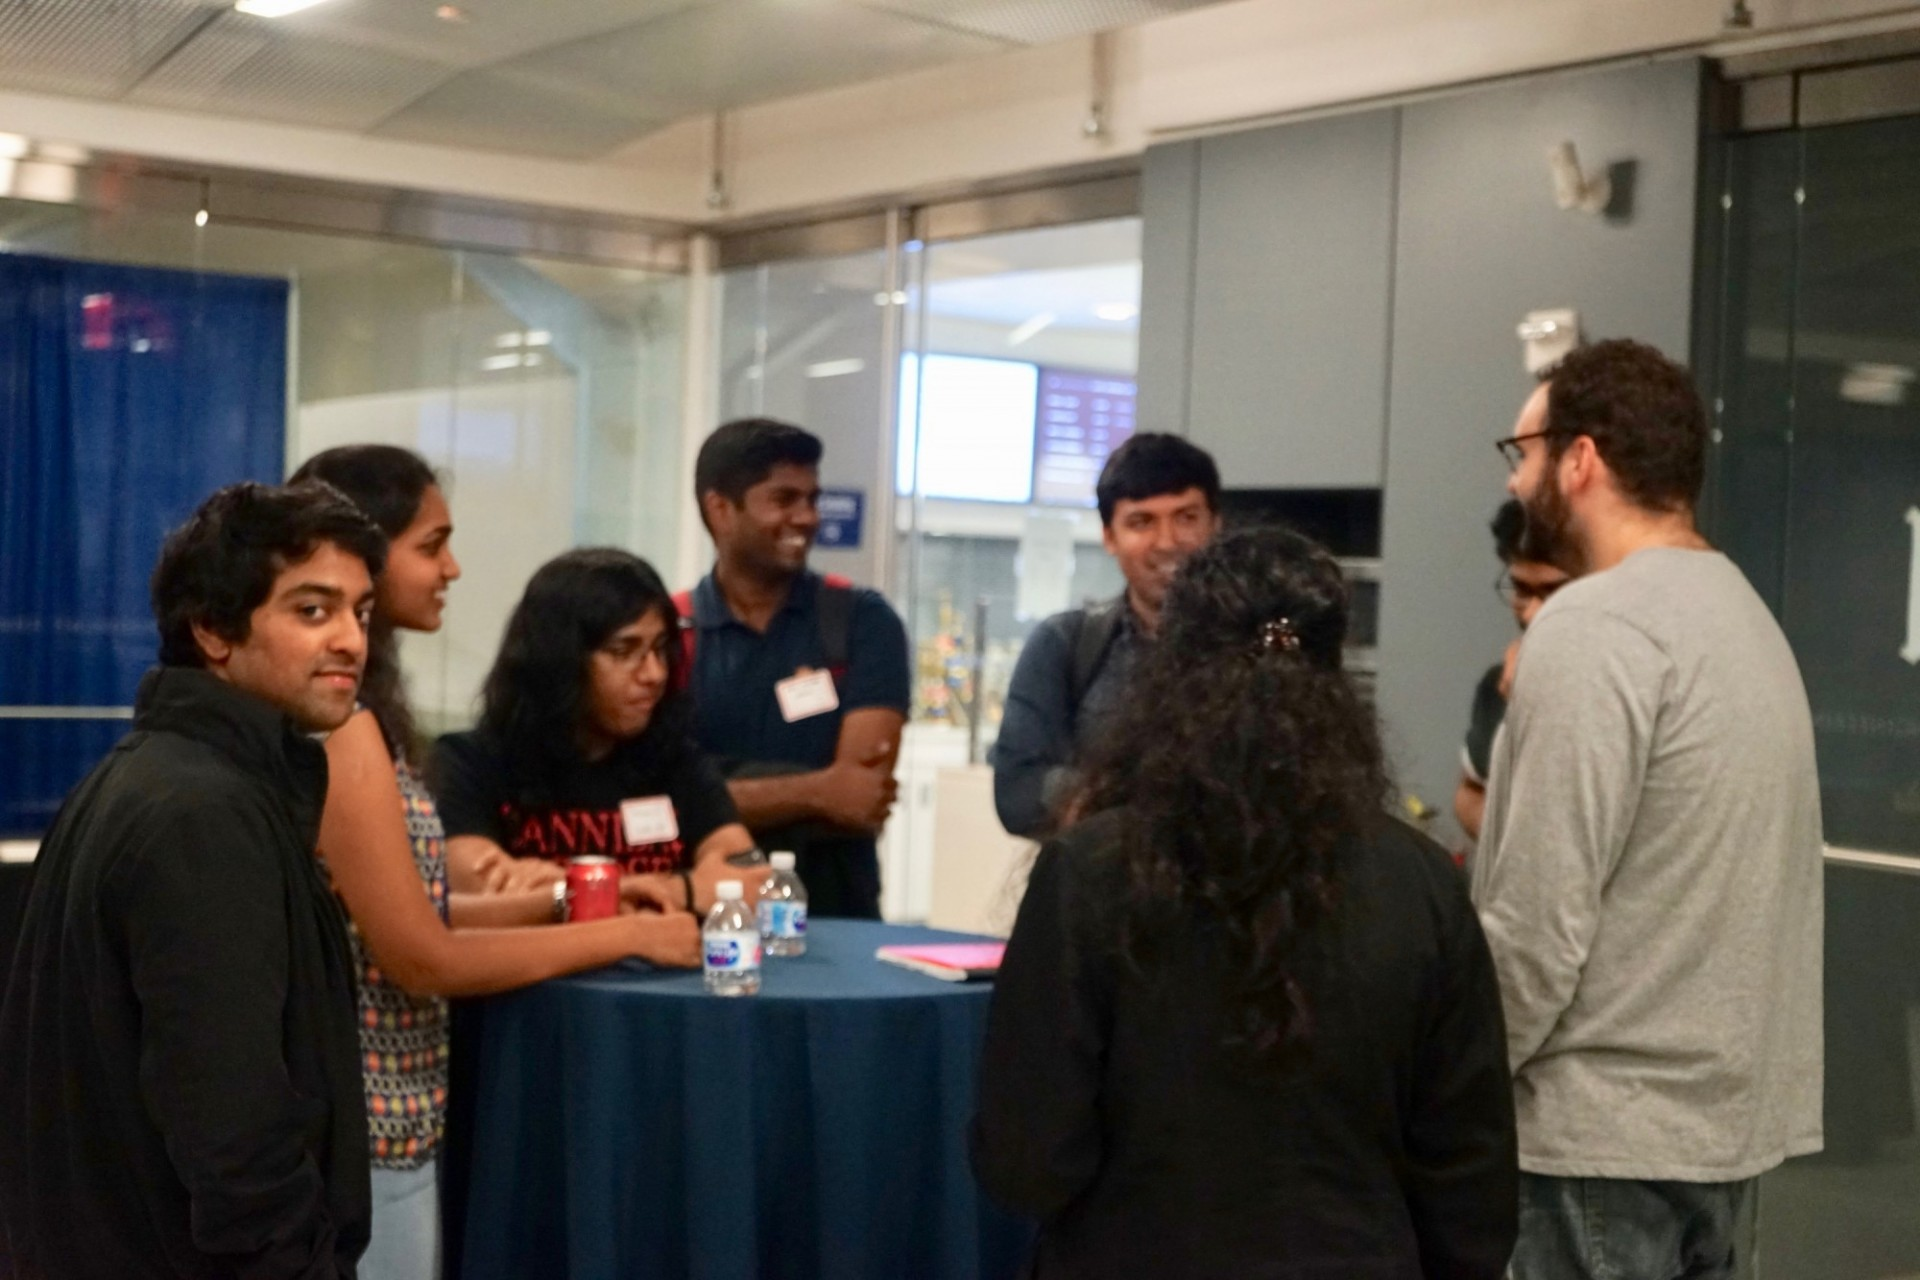 Graduate electrical engineering students socializing at the Graduate Electrical Engineering at Columbia kick-off event